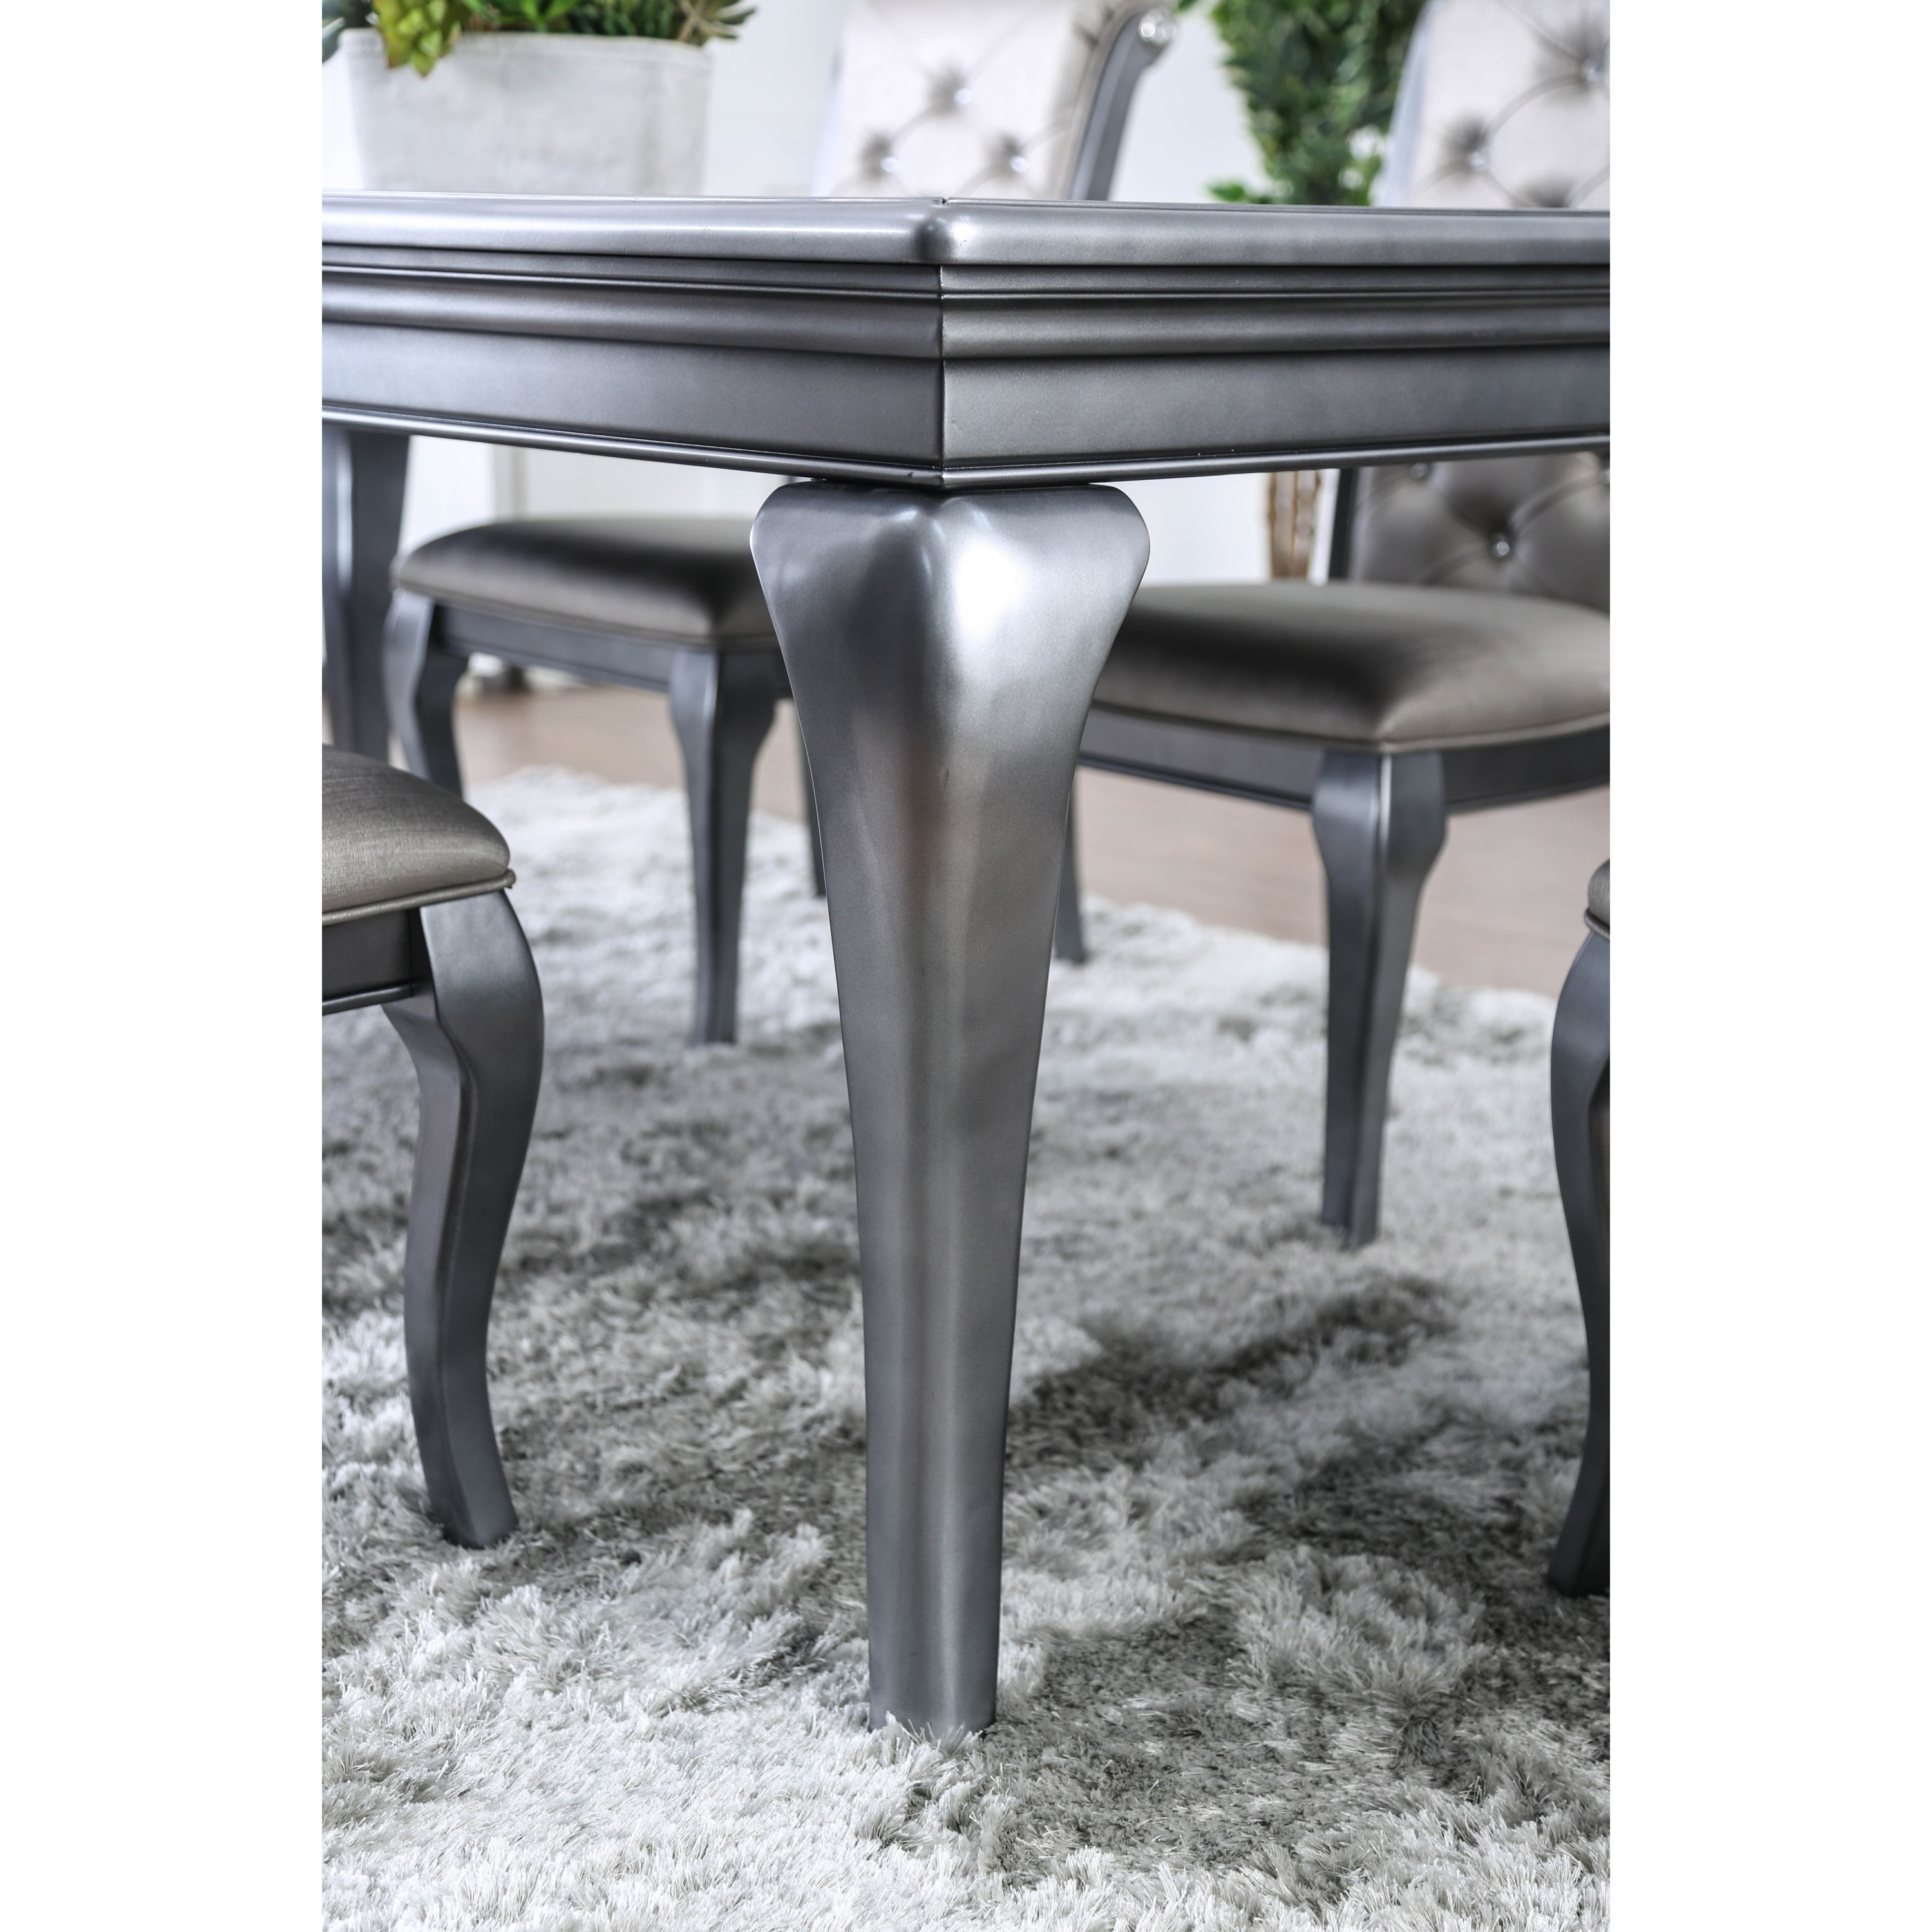 70bb424c7d Shop Furniture of America Valencia Glam Silver Grey Dining Table with Leaf  - On Sale - Free Shipping Today - Overstock - 21177714